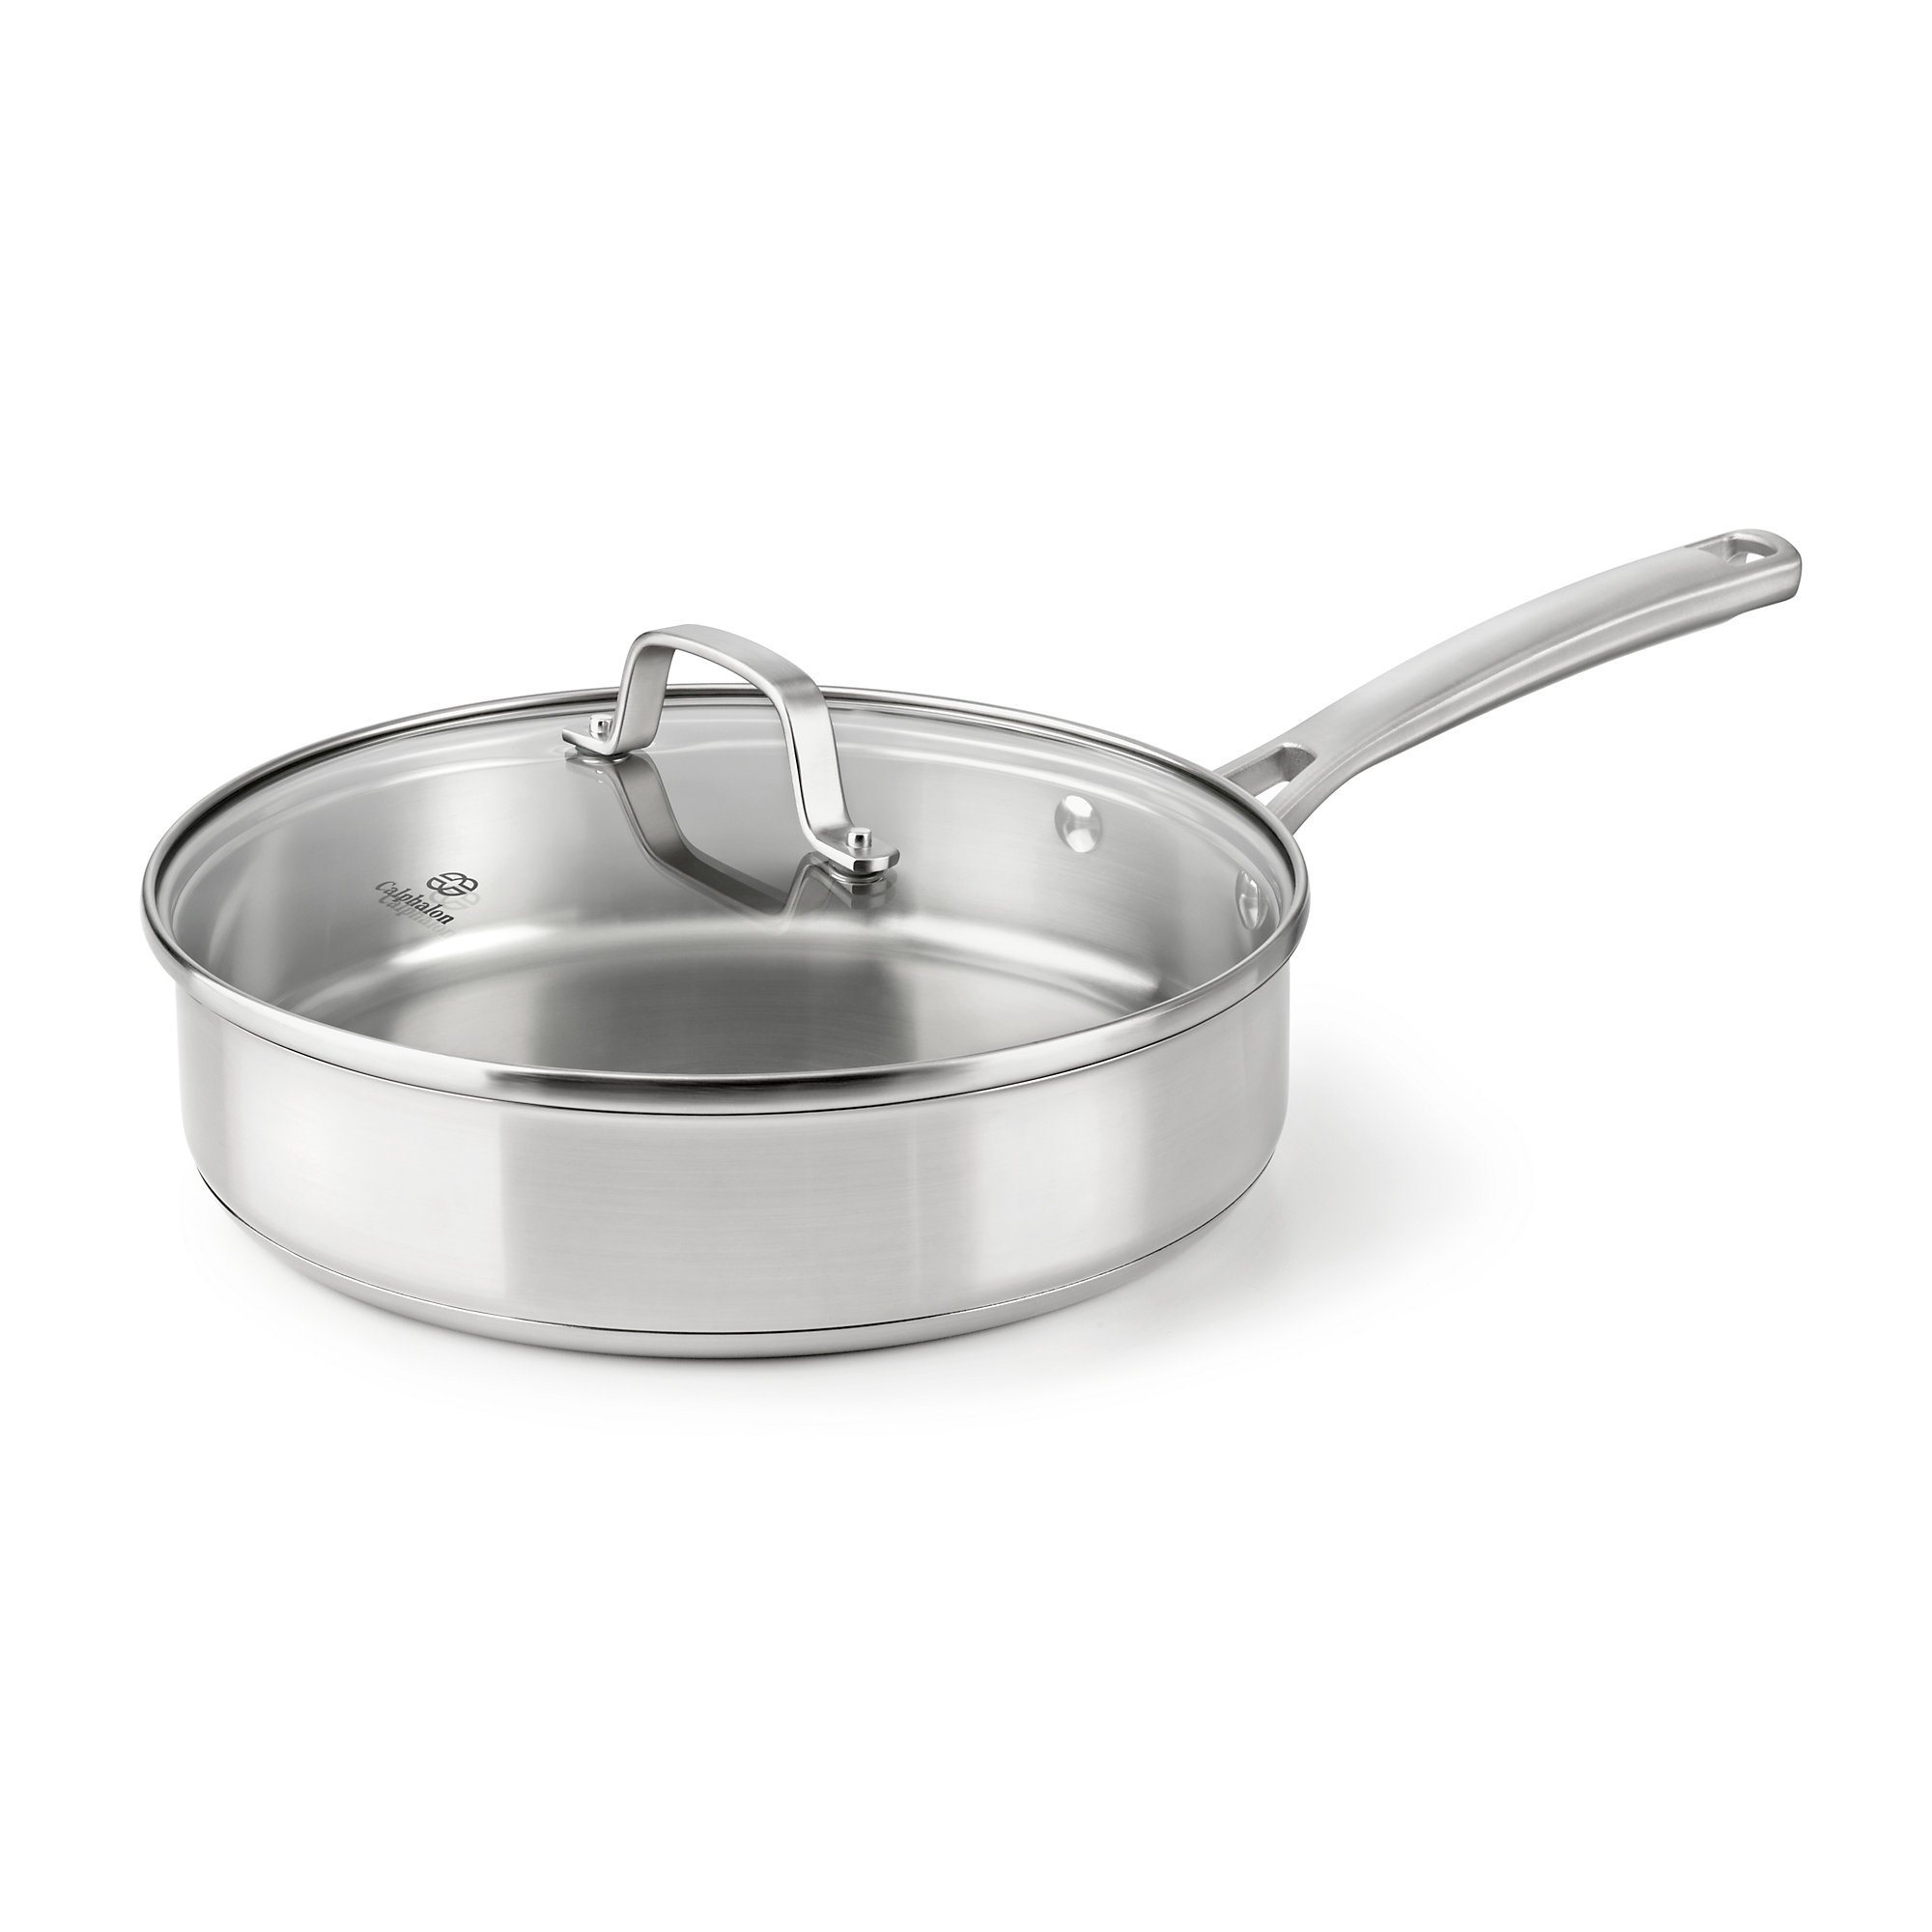 Calphalon Classic Stainless Steel Cookware, Saute Pan, 3-quart by Calphalon